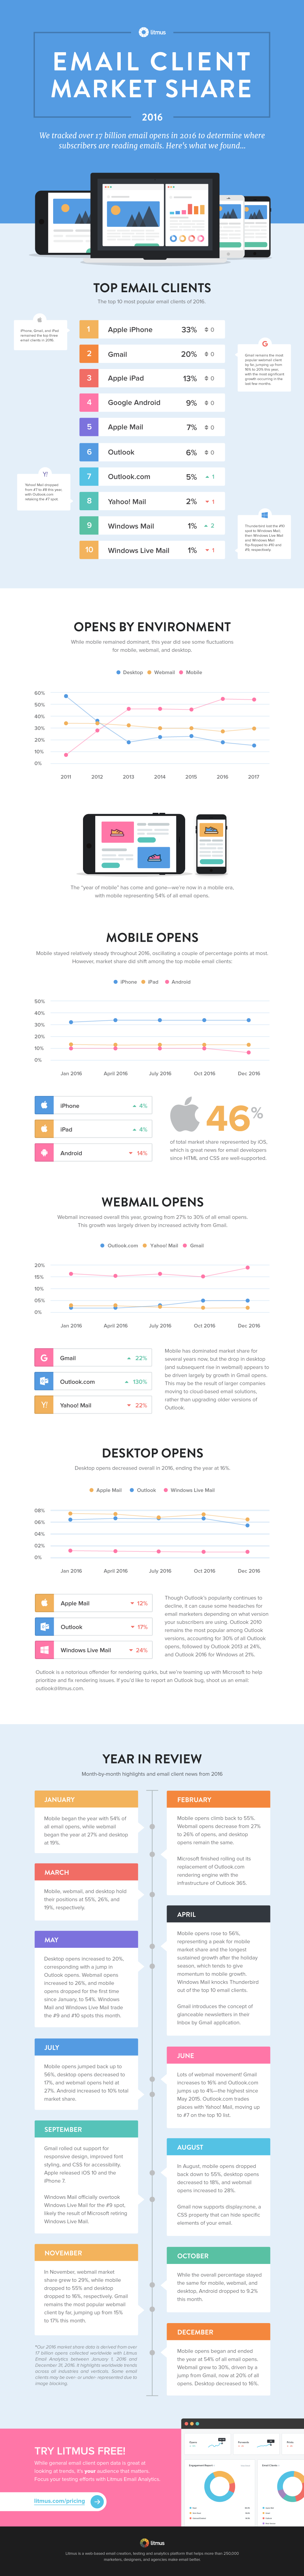 What Can You Learn From Tracking 17 Billion Email Opens